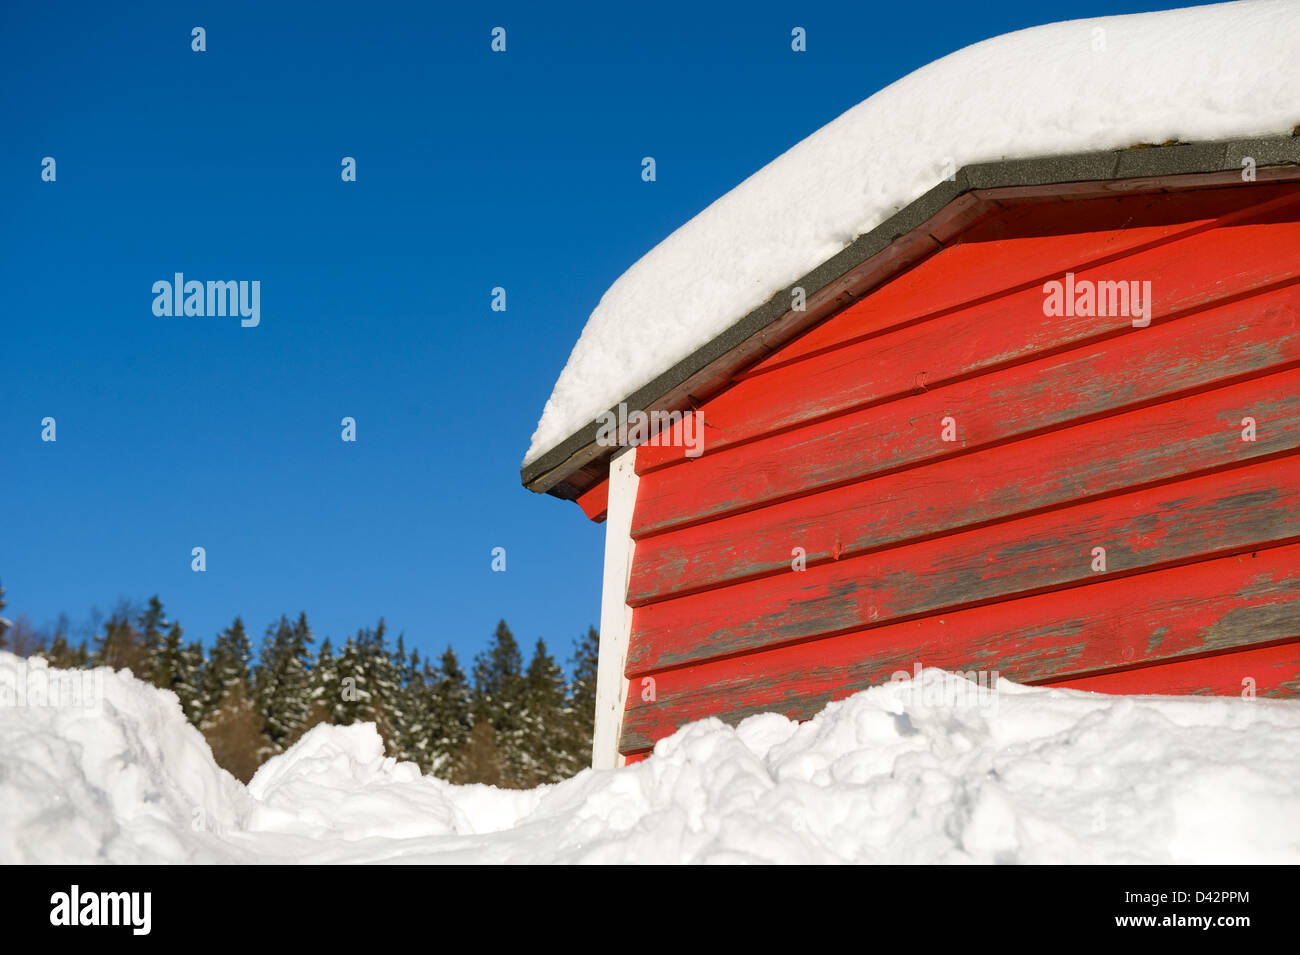 Schierke, Germany, a snowed-in, red-painted wood cabin - Stock Image